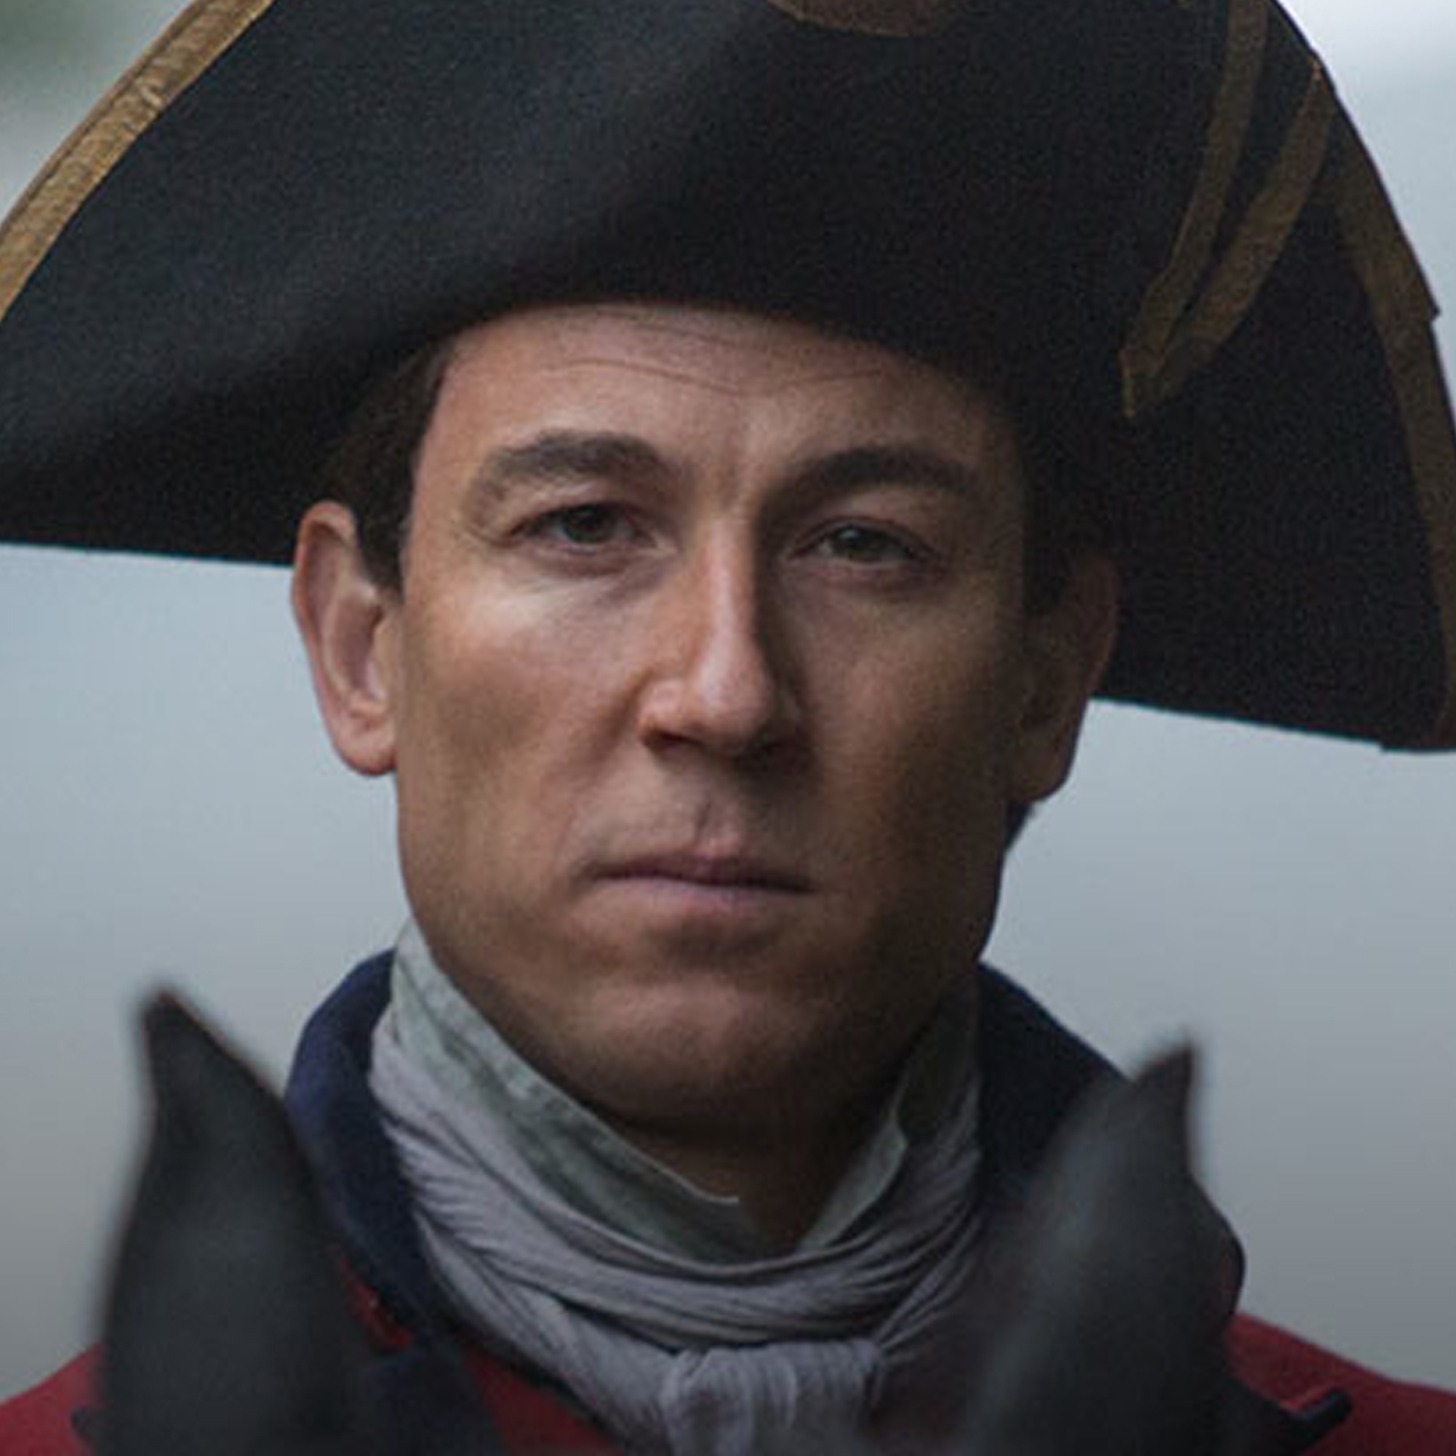 tobias menzies benedict cumberbatchtobias menzies underworld, tobias menzies rome, tobias menzies address, tobias menzies tumblr, tobias menzies theatre 2017, tobias menzies budapest, tobias menzies casualty, tobias menzies sophie hunter, tobias menzies rom, tobias menzies imdb, tobias menzies in night manager, tobias menzies instagram, tobias menzies twitter, tobias menzies game of thrones, tobias menzies and lotte verbeek, tobias menzies facebook, tobias menzies filmography, tobias menzies benedict cumberbatch, tobias menzies relationships, tobias menzies self portrait